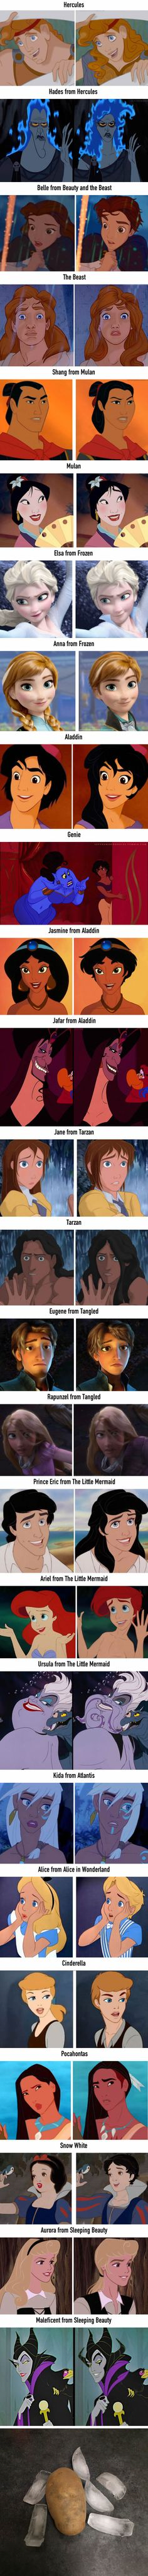 Pixar Drawing 26 Gender-Bending Disney Characters That Actually Look Nice - Disney Pixar, Walt Disney, Disney And Dreamworks, Disney Magic, Disney Art, Disney Stuff, Tarzan Disney, Ursula Disney, Disney Pocahontas